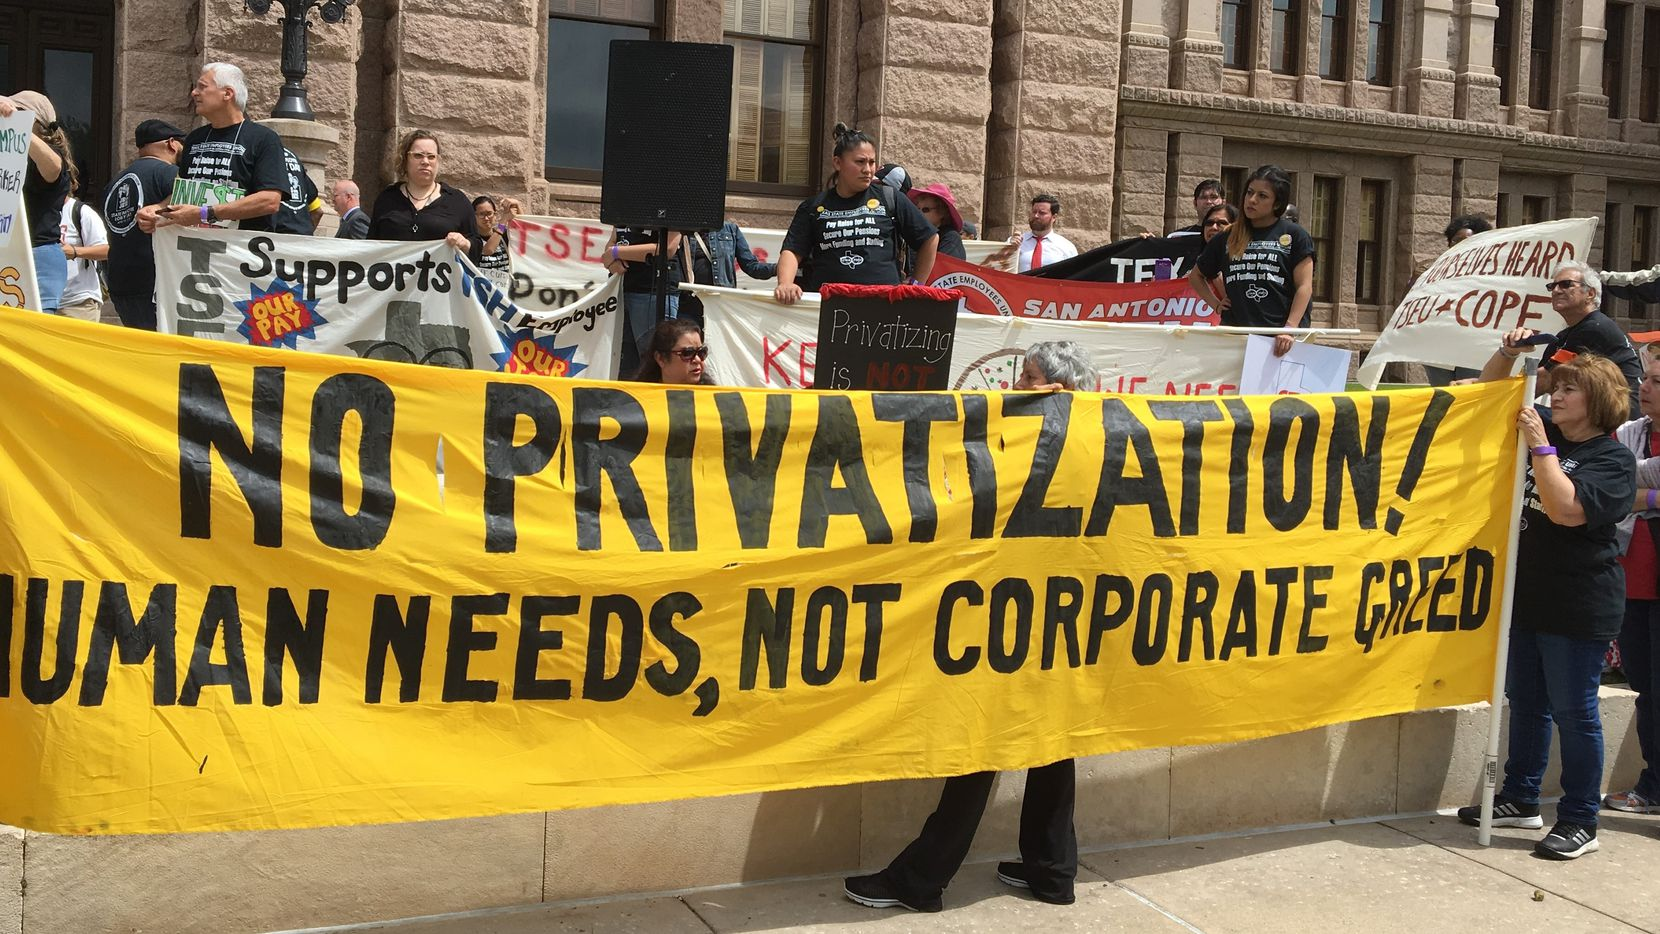 State agency and university employees who belong to a union protested low pay, inadequate staffing and privatization schemes Wednesday at a Capitol rally in Austin. (Robert T. Garrett/Staff)